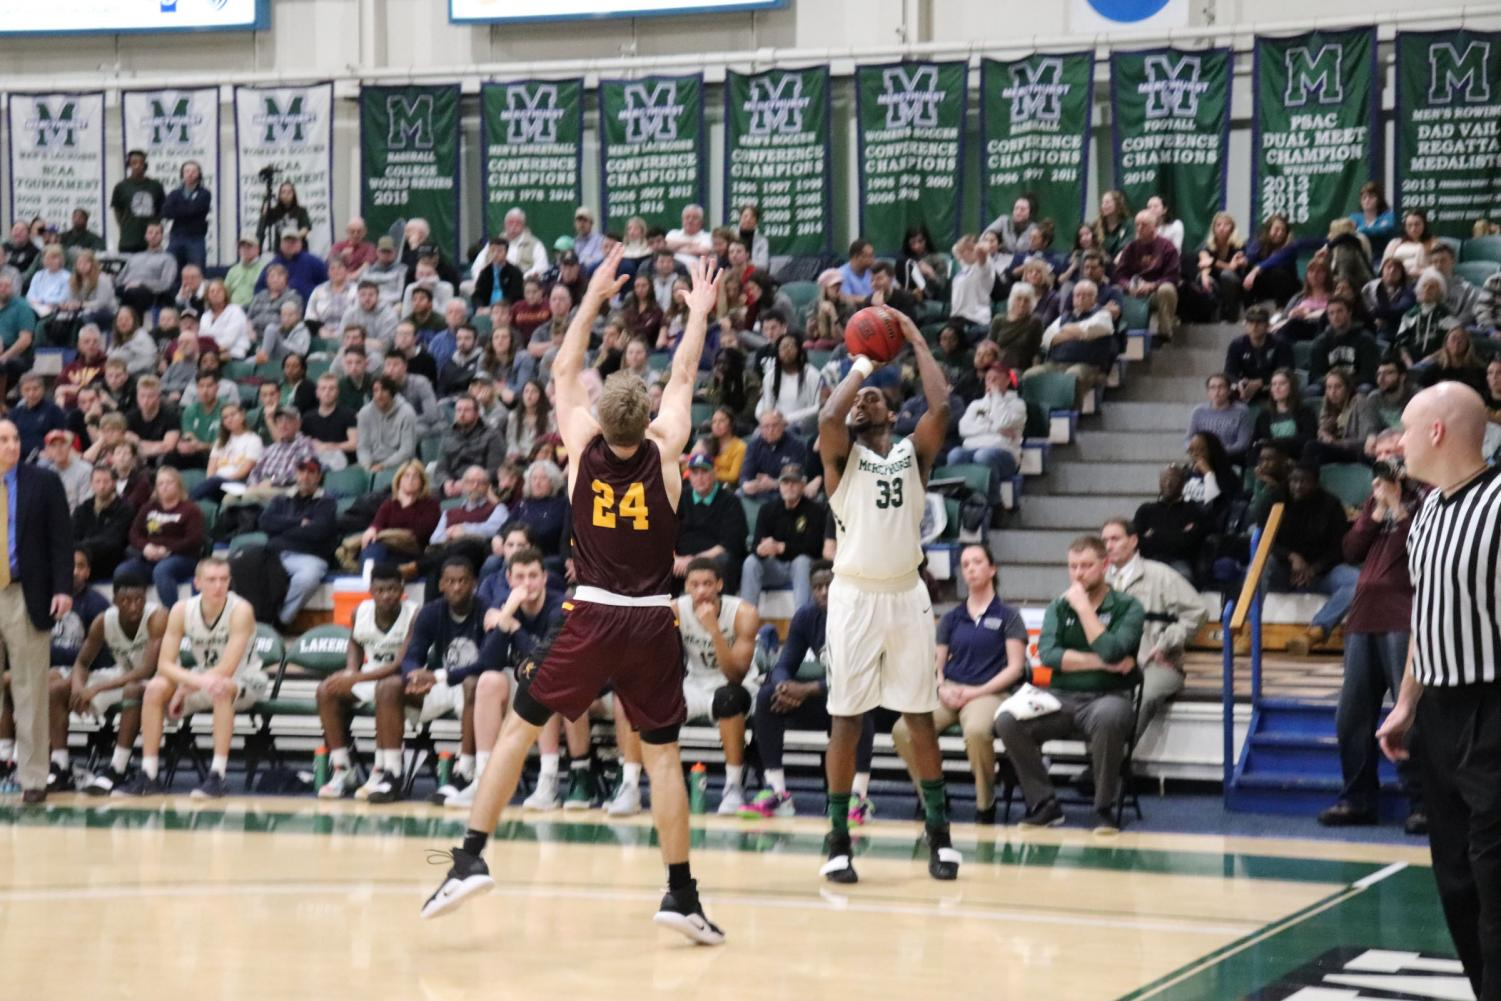 The Lakers' No. 33 Patrick Smith aims to shoot as Gannon University's Joe Fustine moves to block.  The Lakers were victorious with a 51-35 finish, taking home the 2019 Porreco Pride of Erie Cup.